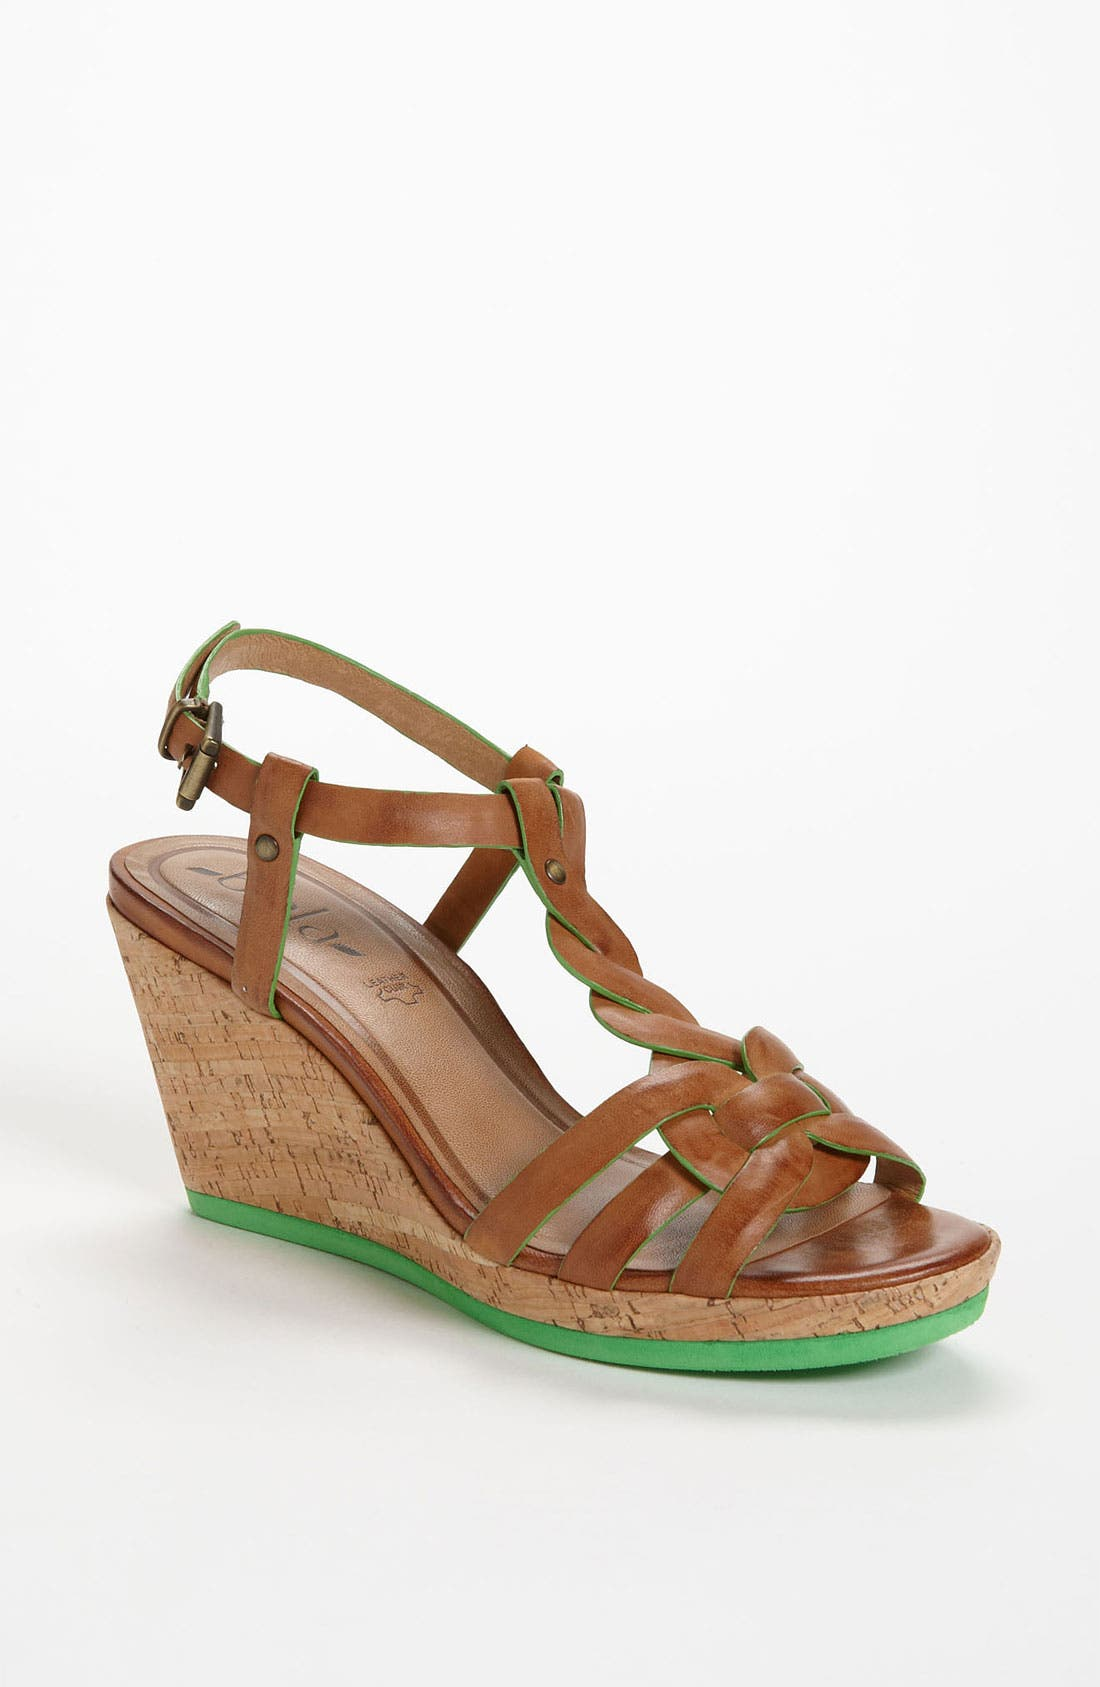 Alternate Image 1 Selected - Biala 'Jillian' Wedge Sandal